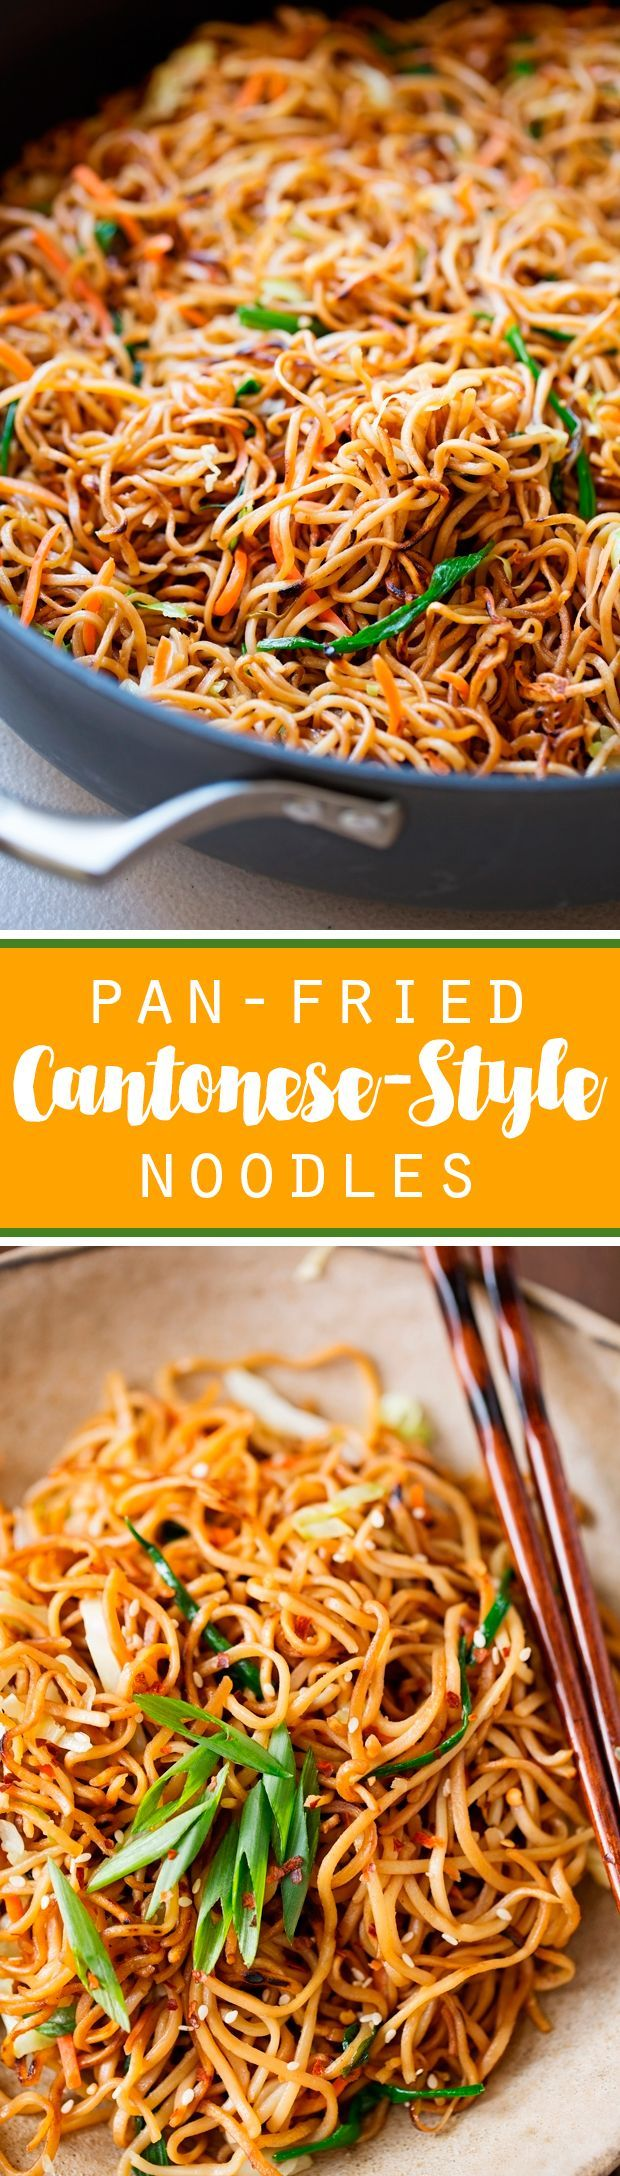 Cantonese-Style Pan-Fried Noodles - smokey noodles just like your favorite restaurants and it's a quick 30 minutes to make! That's faster than takeout! #cantonesenoodles #panfriednoodles #chowmein   http://Littlespicejar.com